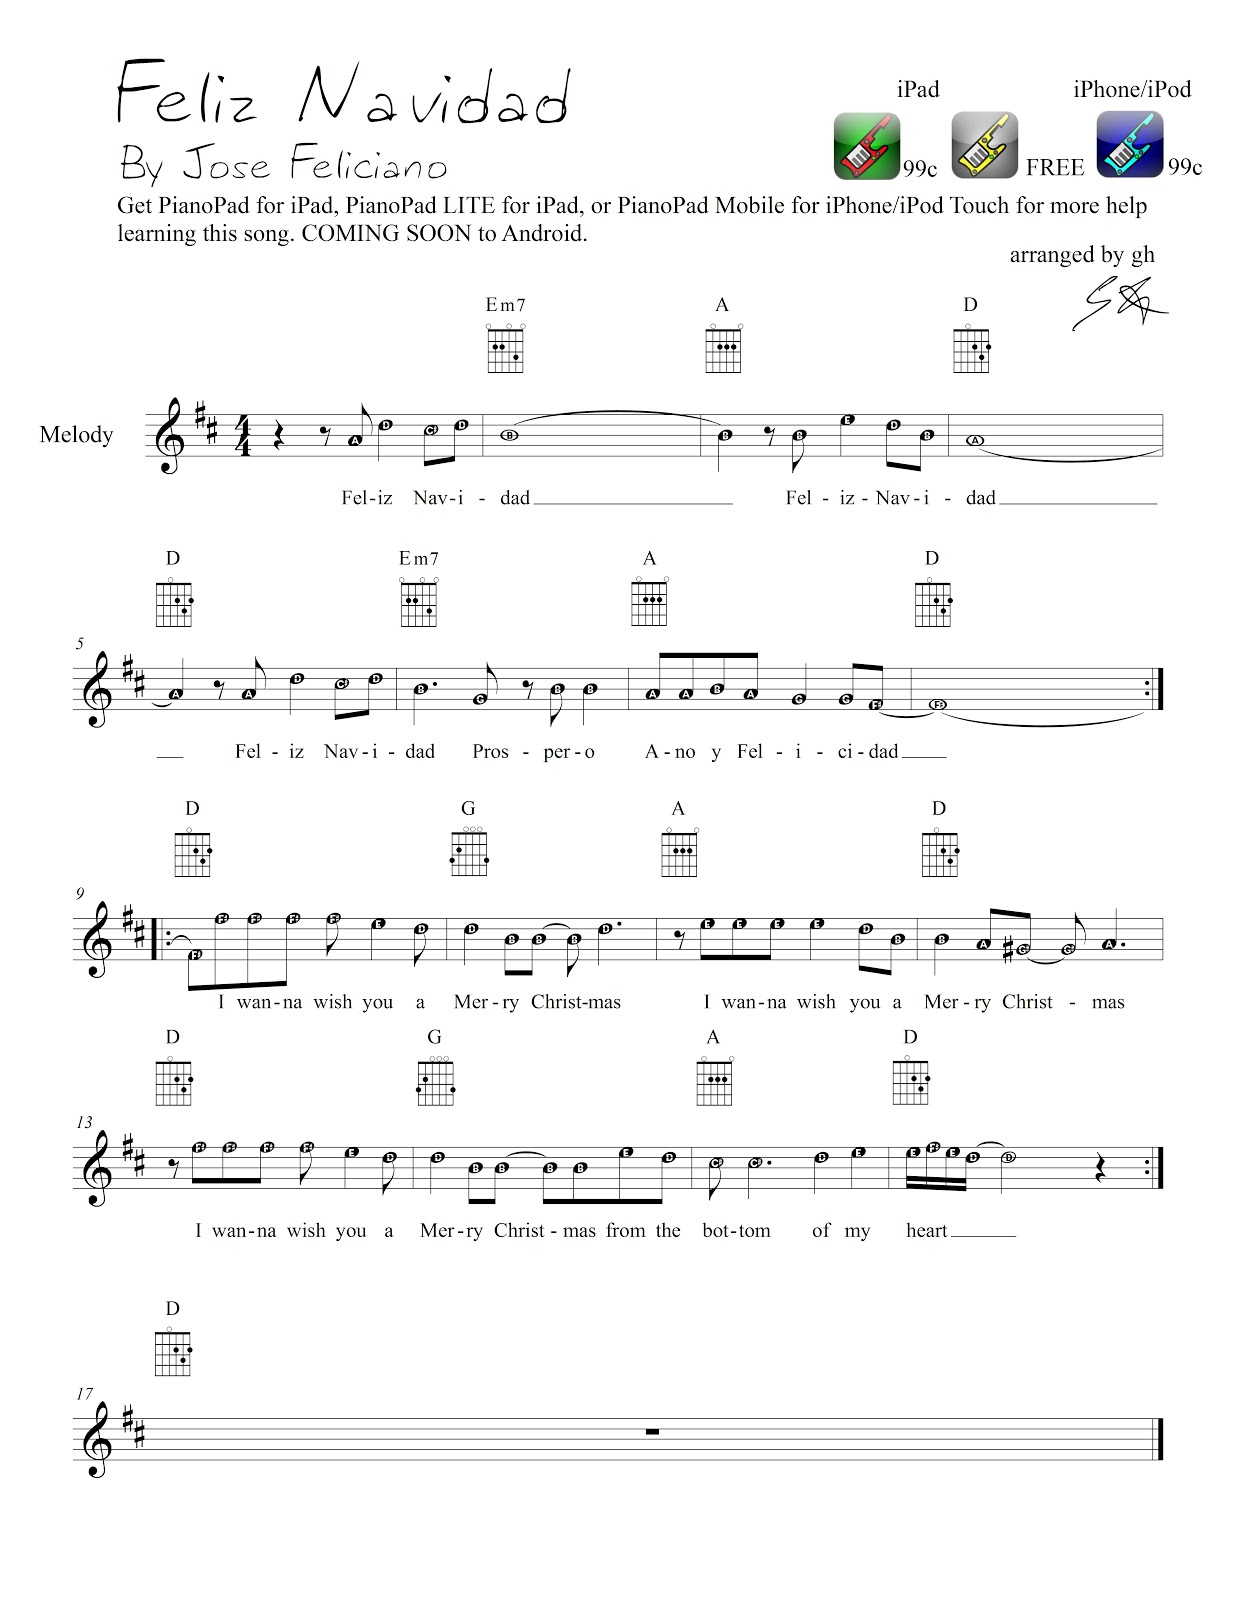 PianoPad Upload Community: This CHRISTMAS song titled ...